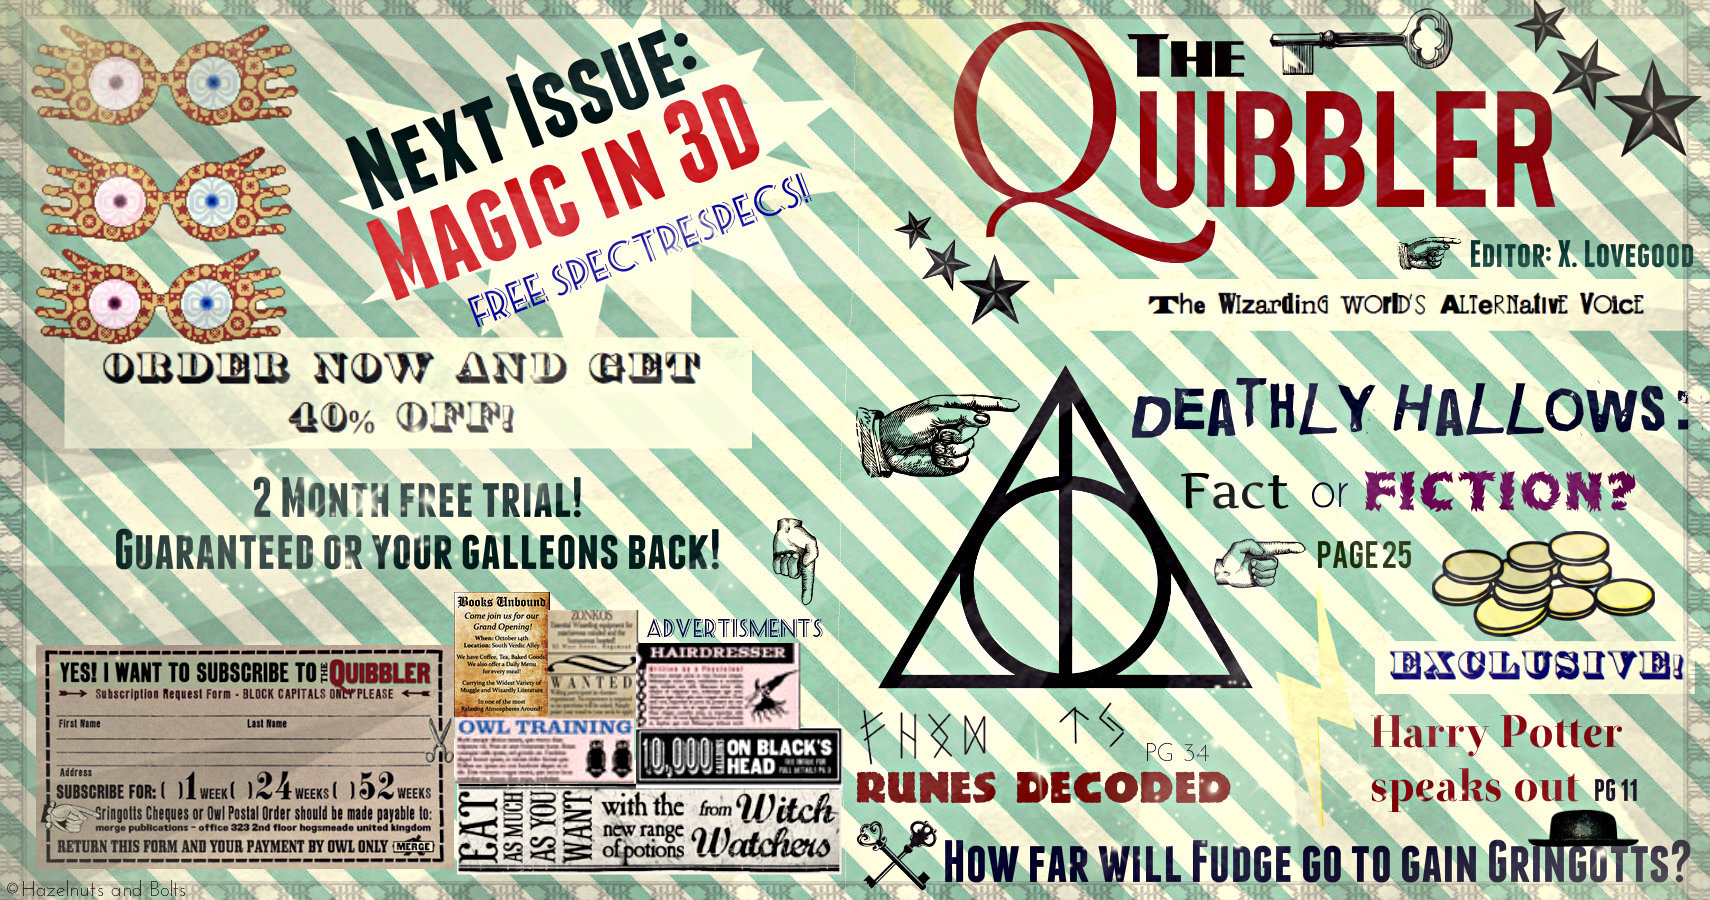 image about Quibbler Printable identify The Quibbler + Nutritious Yellow Cake!